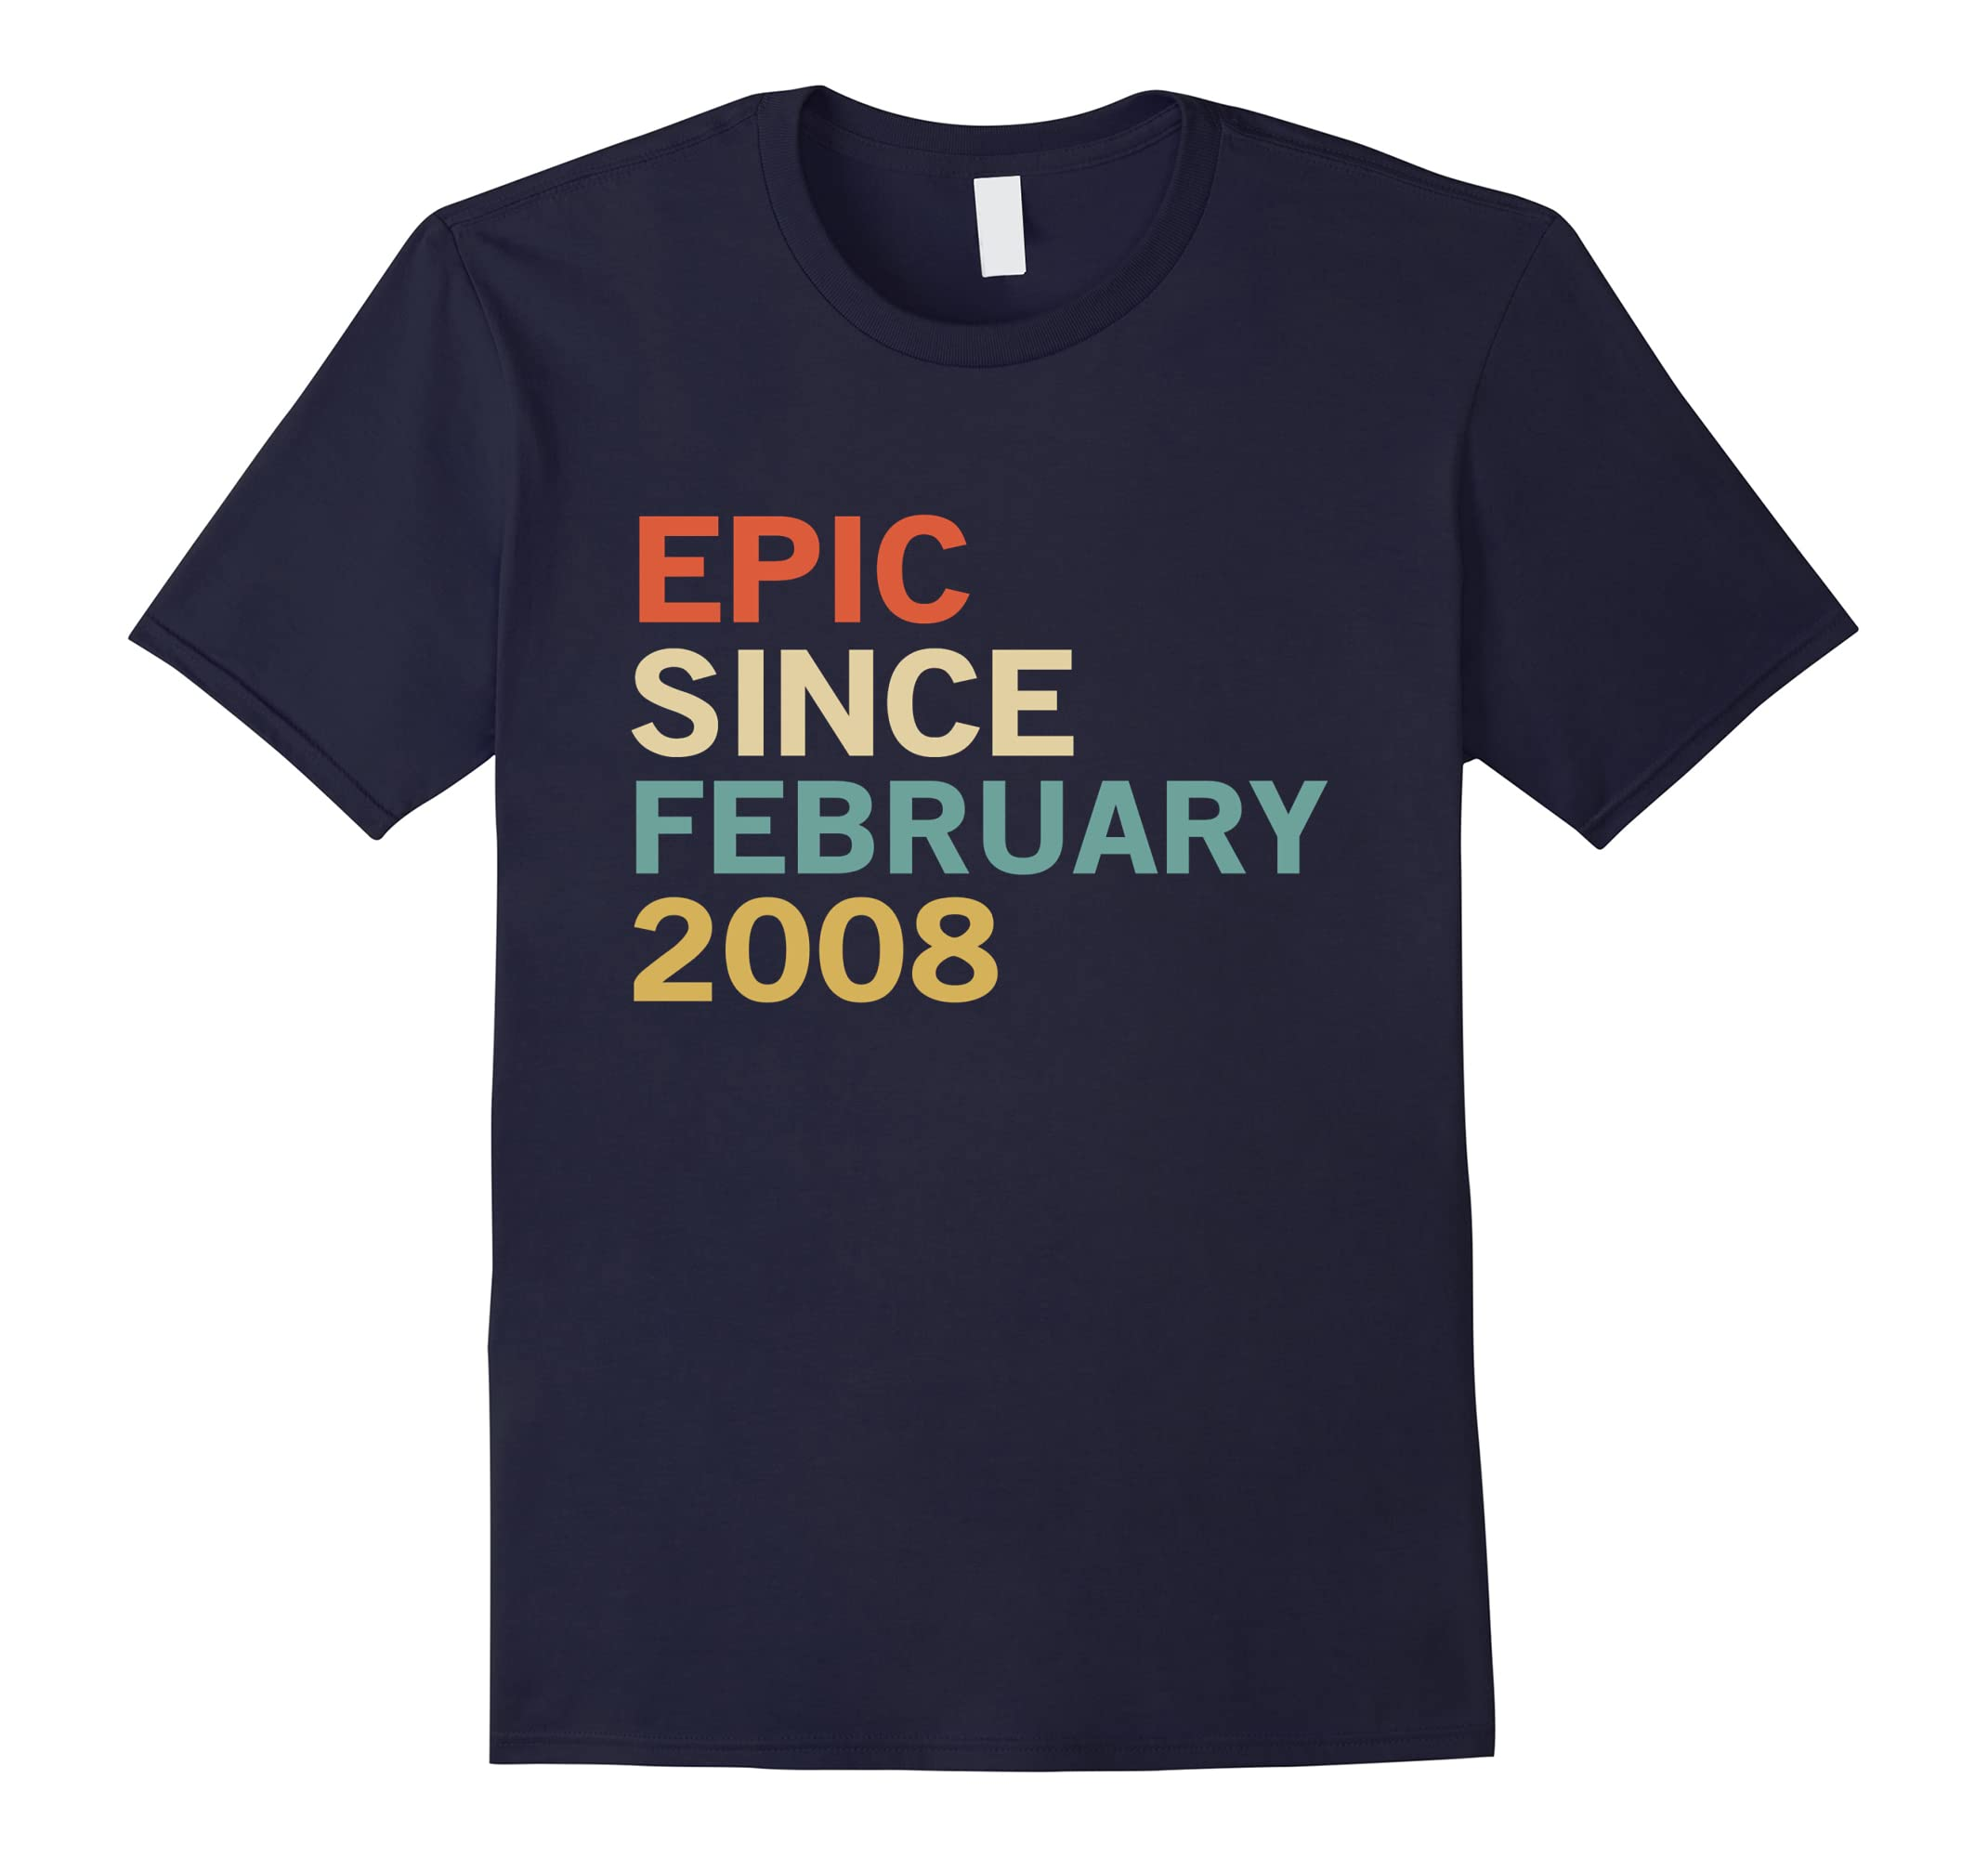 10th Birthday Gift Tee, Epic Since February 2008 T-Shirt-ah my shirt one gift